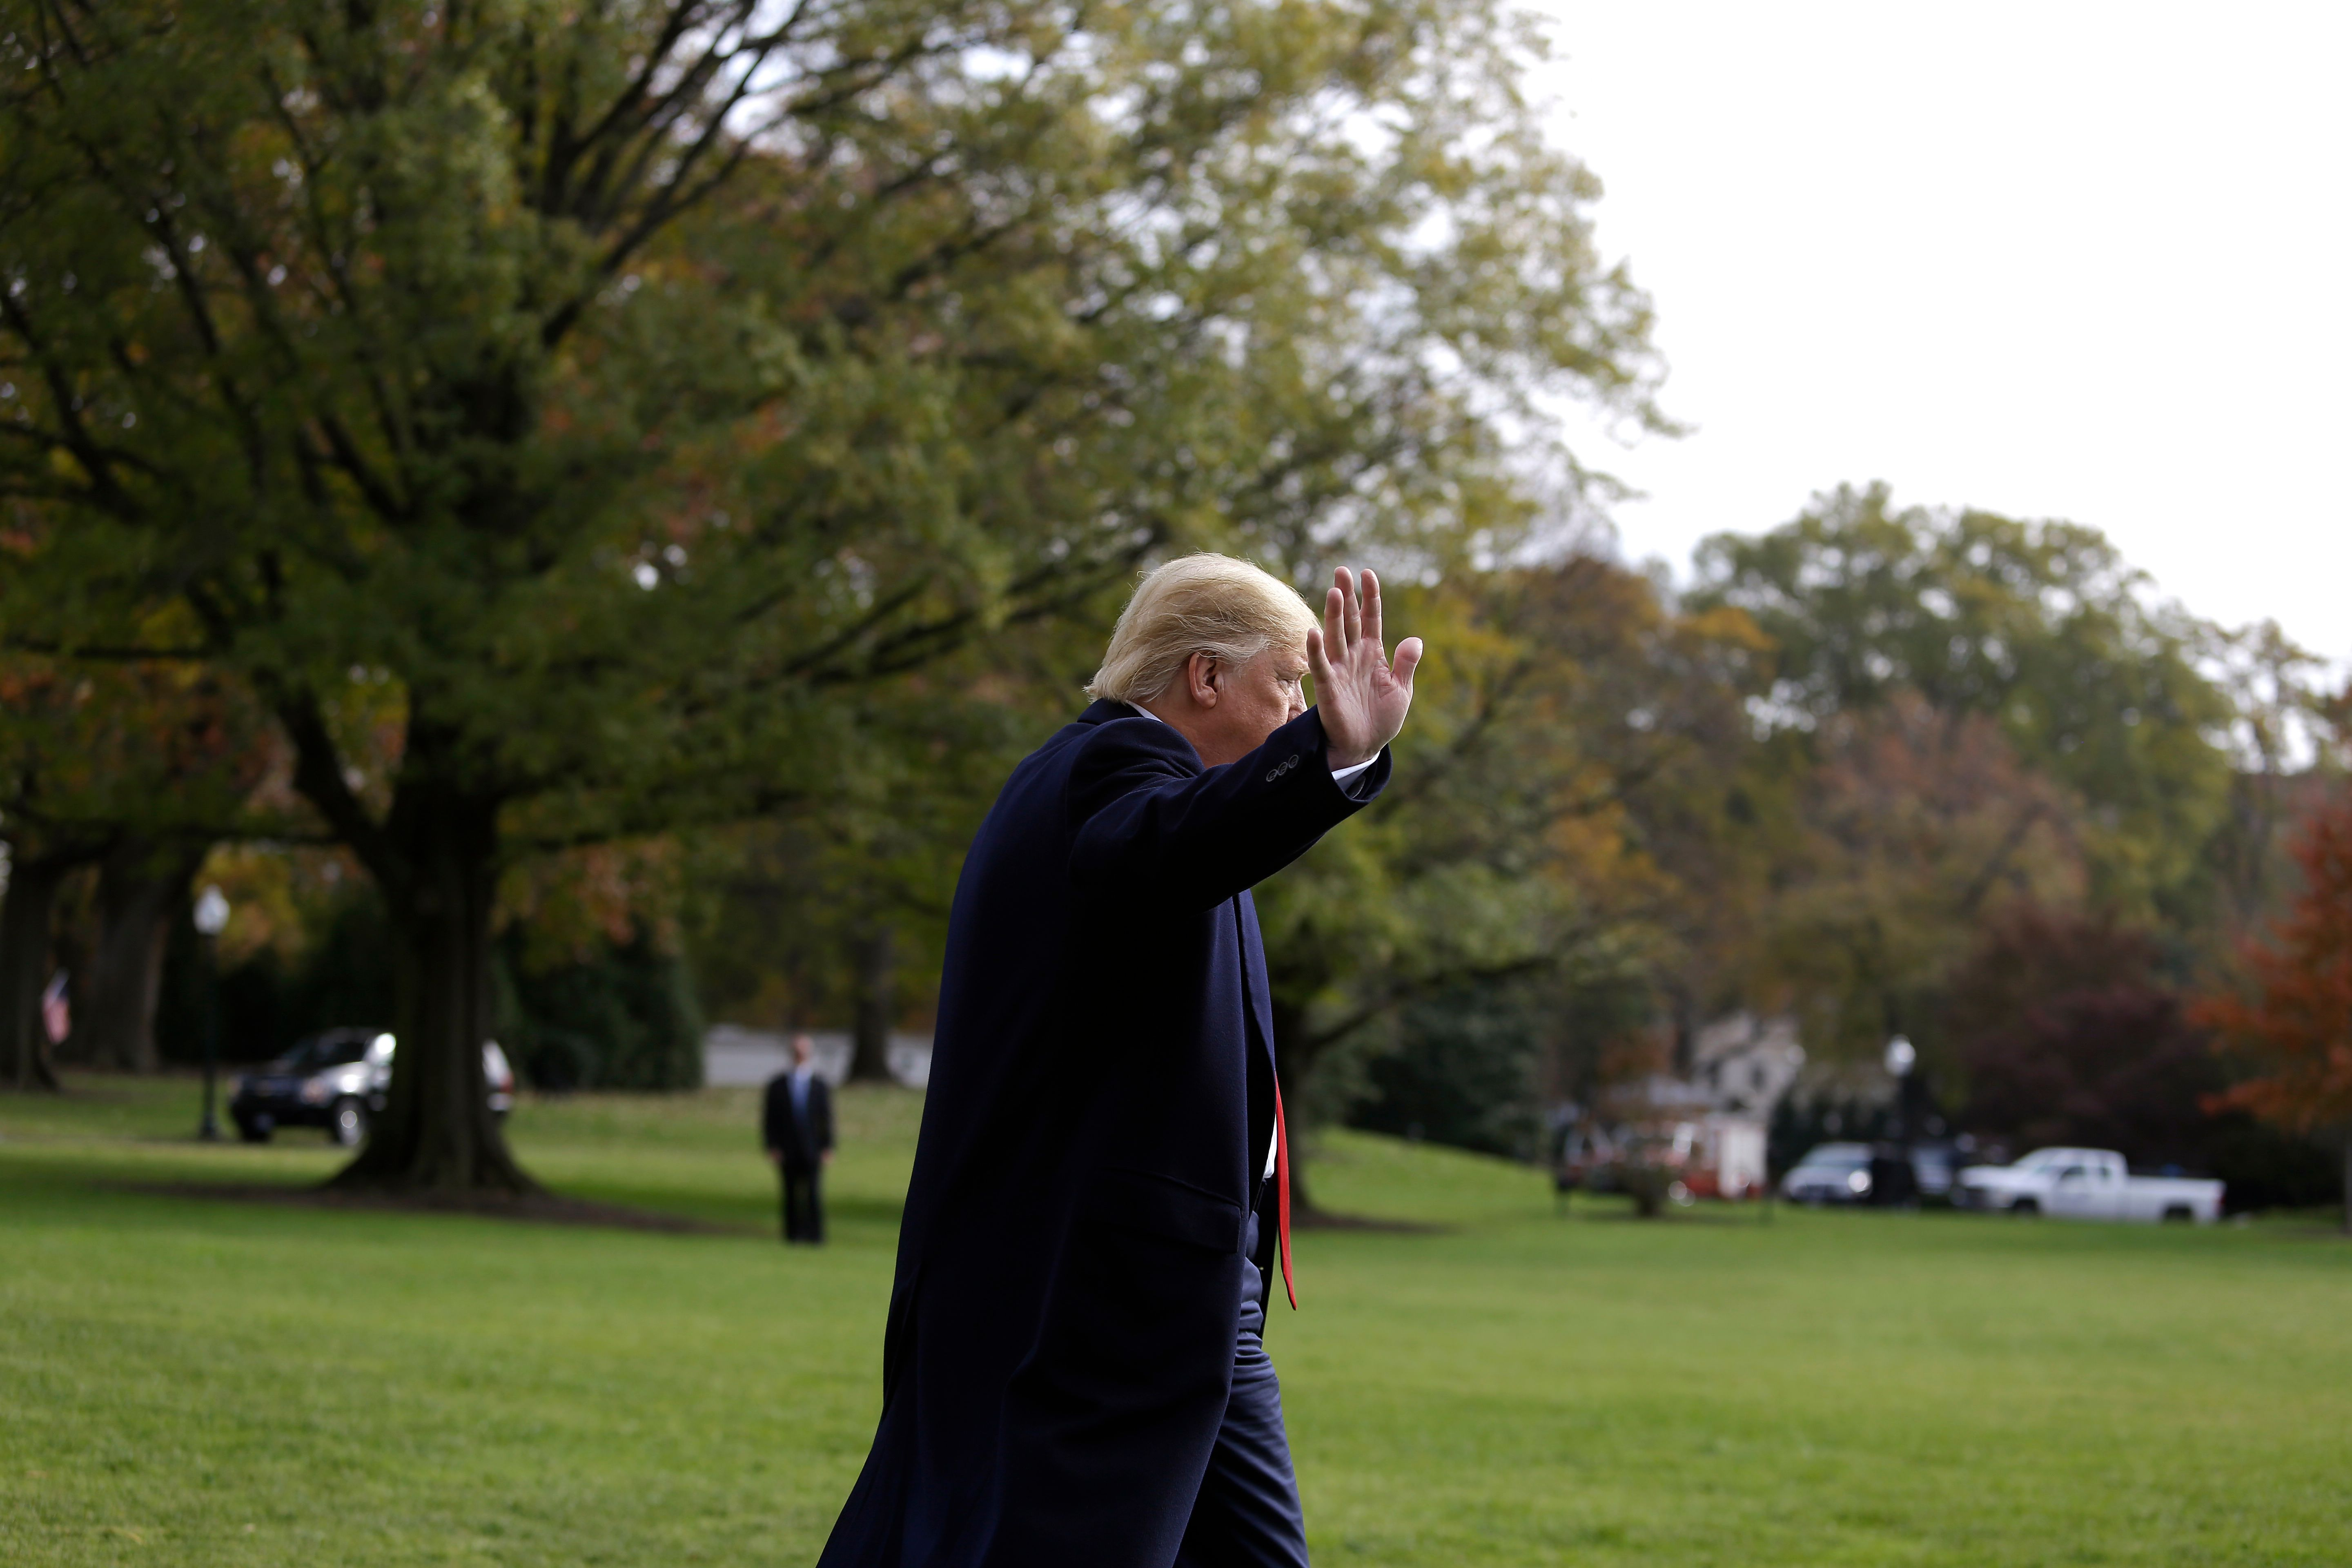 President Donald Trump from the White House before boarding Marine One in Washington, D.C. on Nov. 20, 2019.